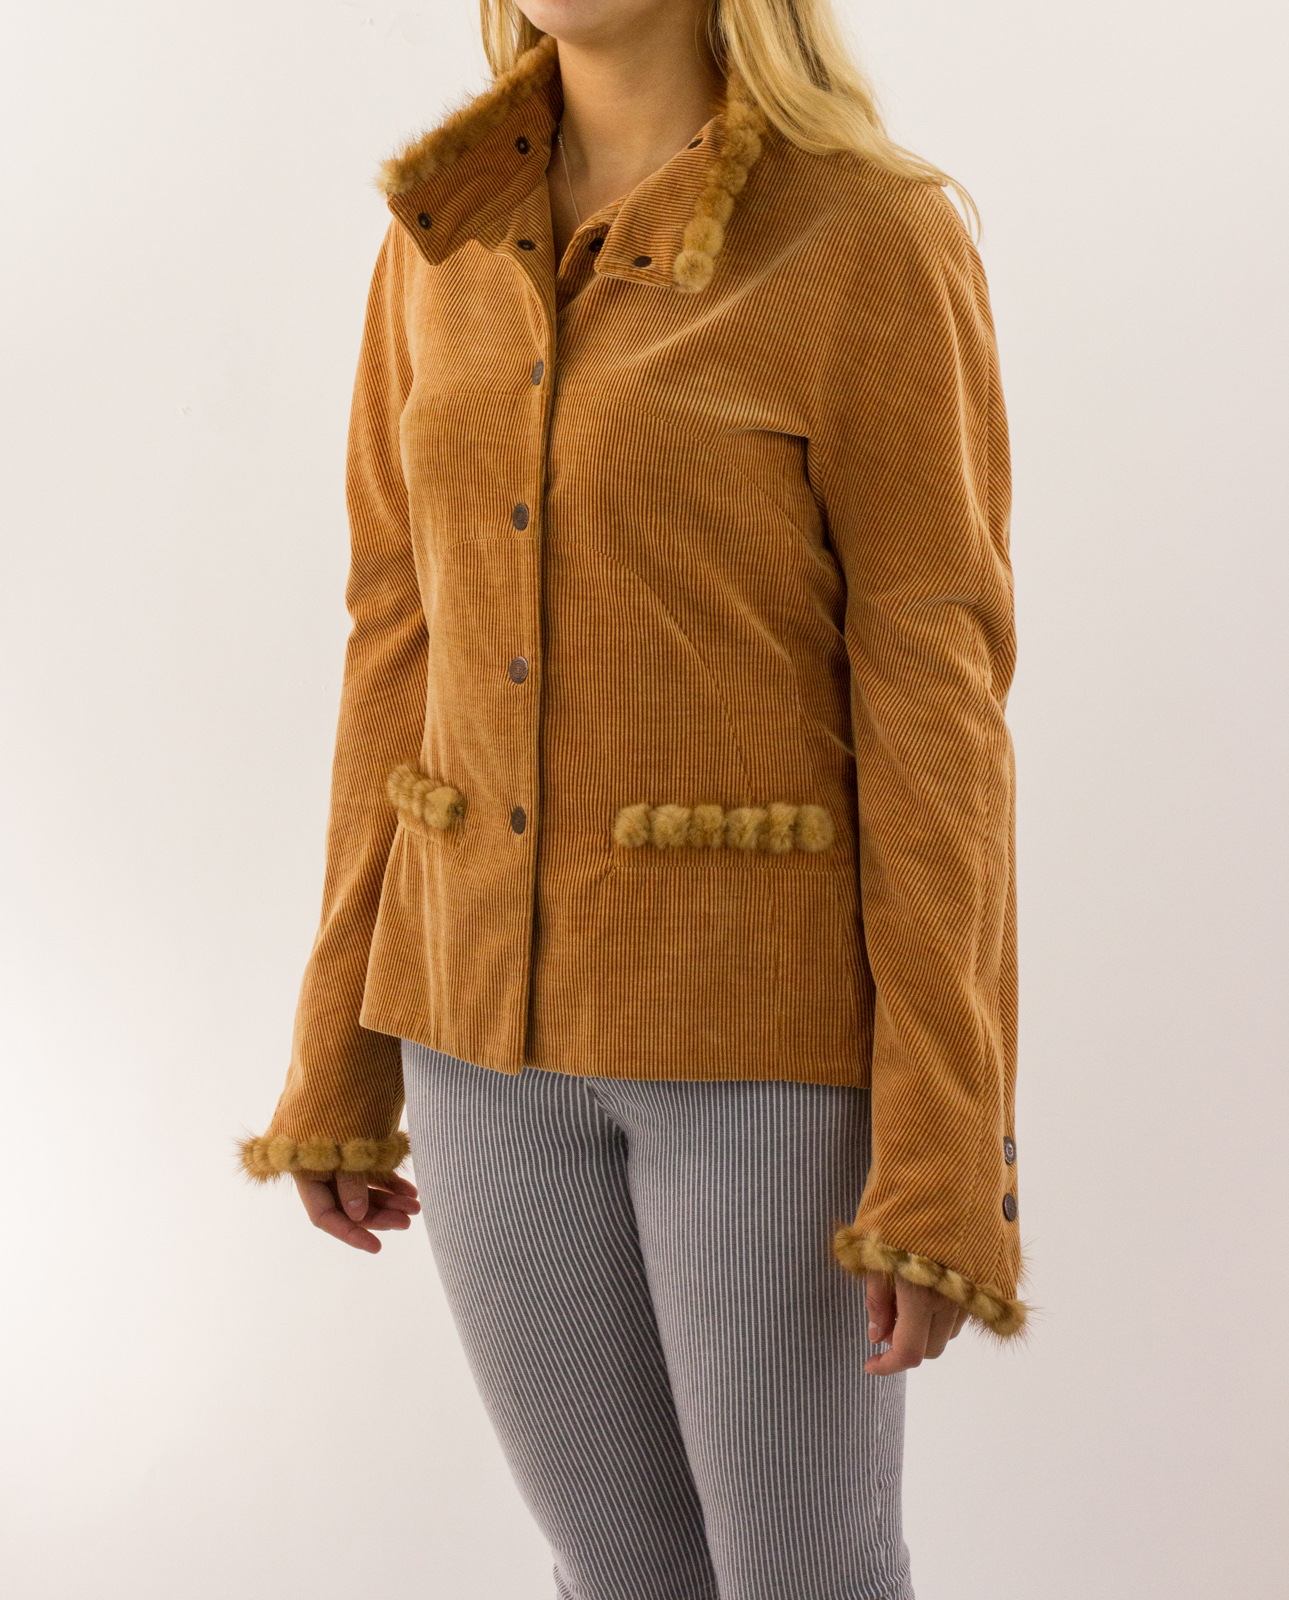 Chanel Tan Corduroy Jacket With Fur Trim Penny Pincher Boutique